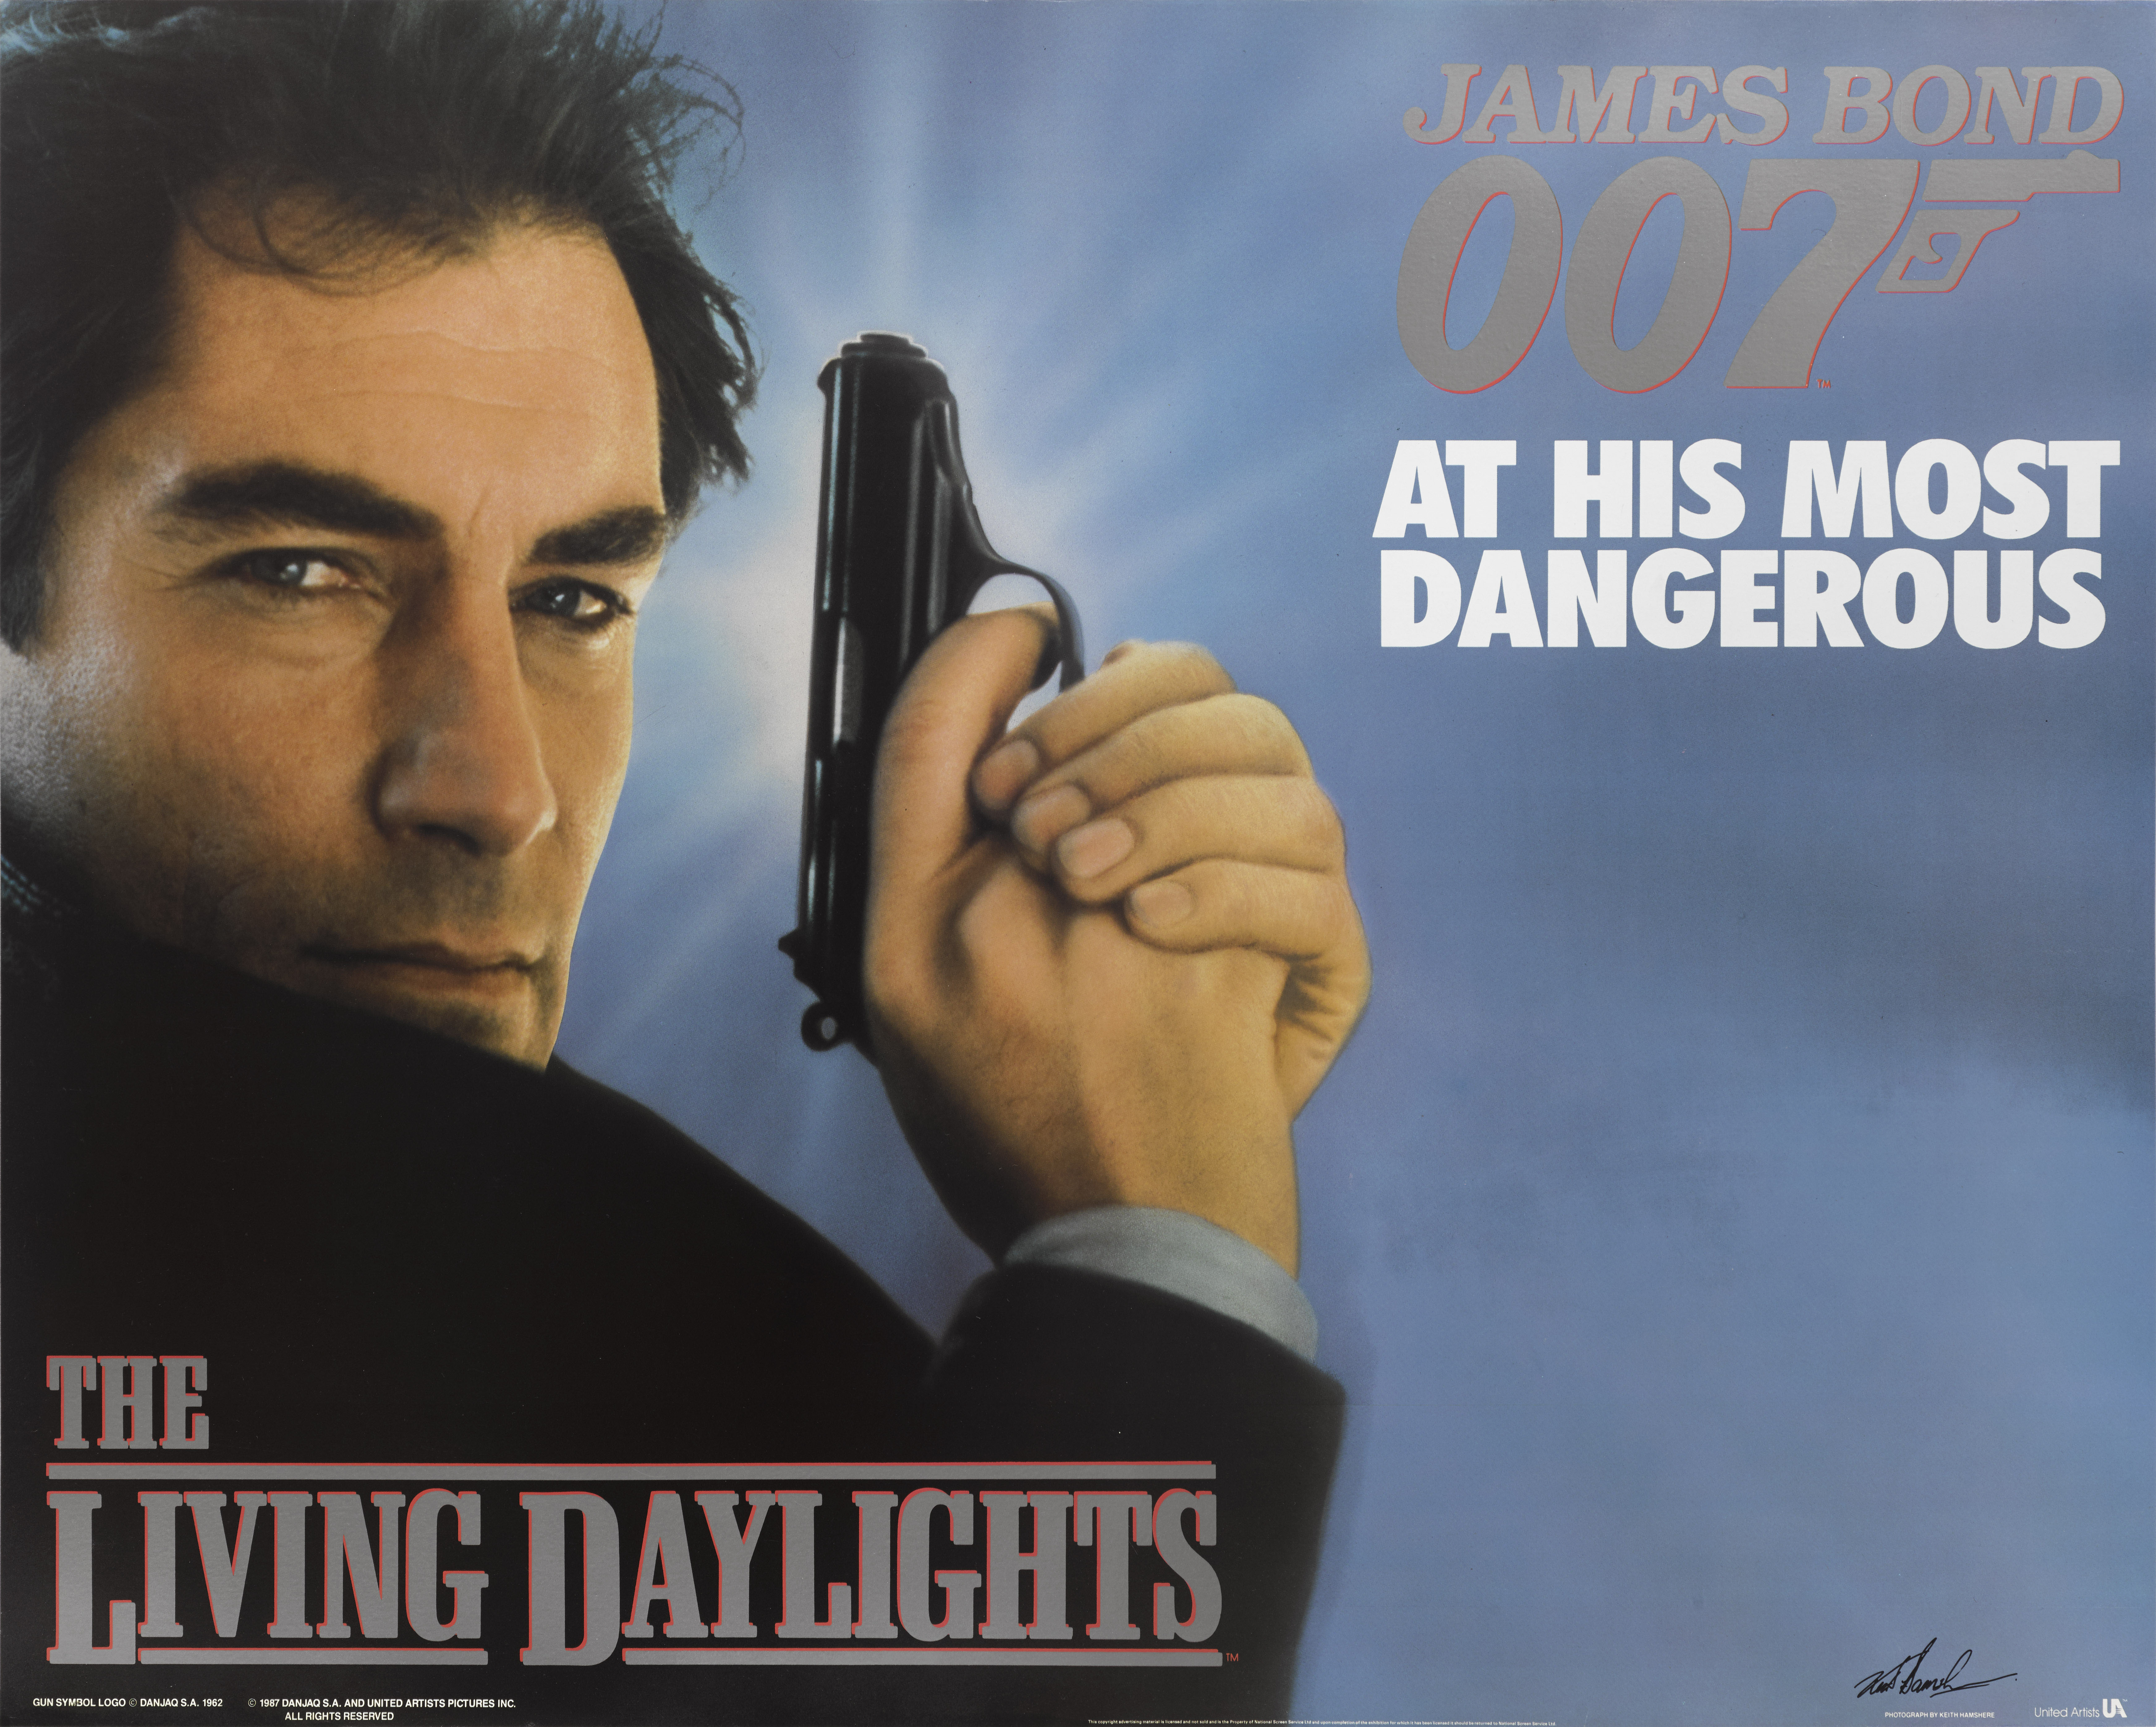 THE LIVING DAYLIGHTS (1987) POSTER, BRITISH, ADVANCE, SIGNED BY KEITH HAMSHERE (STILL PHOTOGRAPHER)